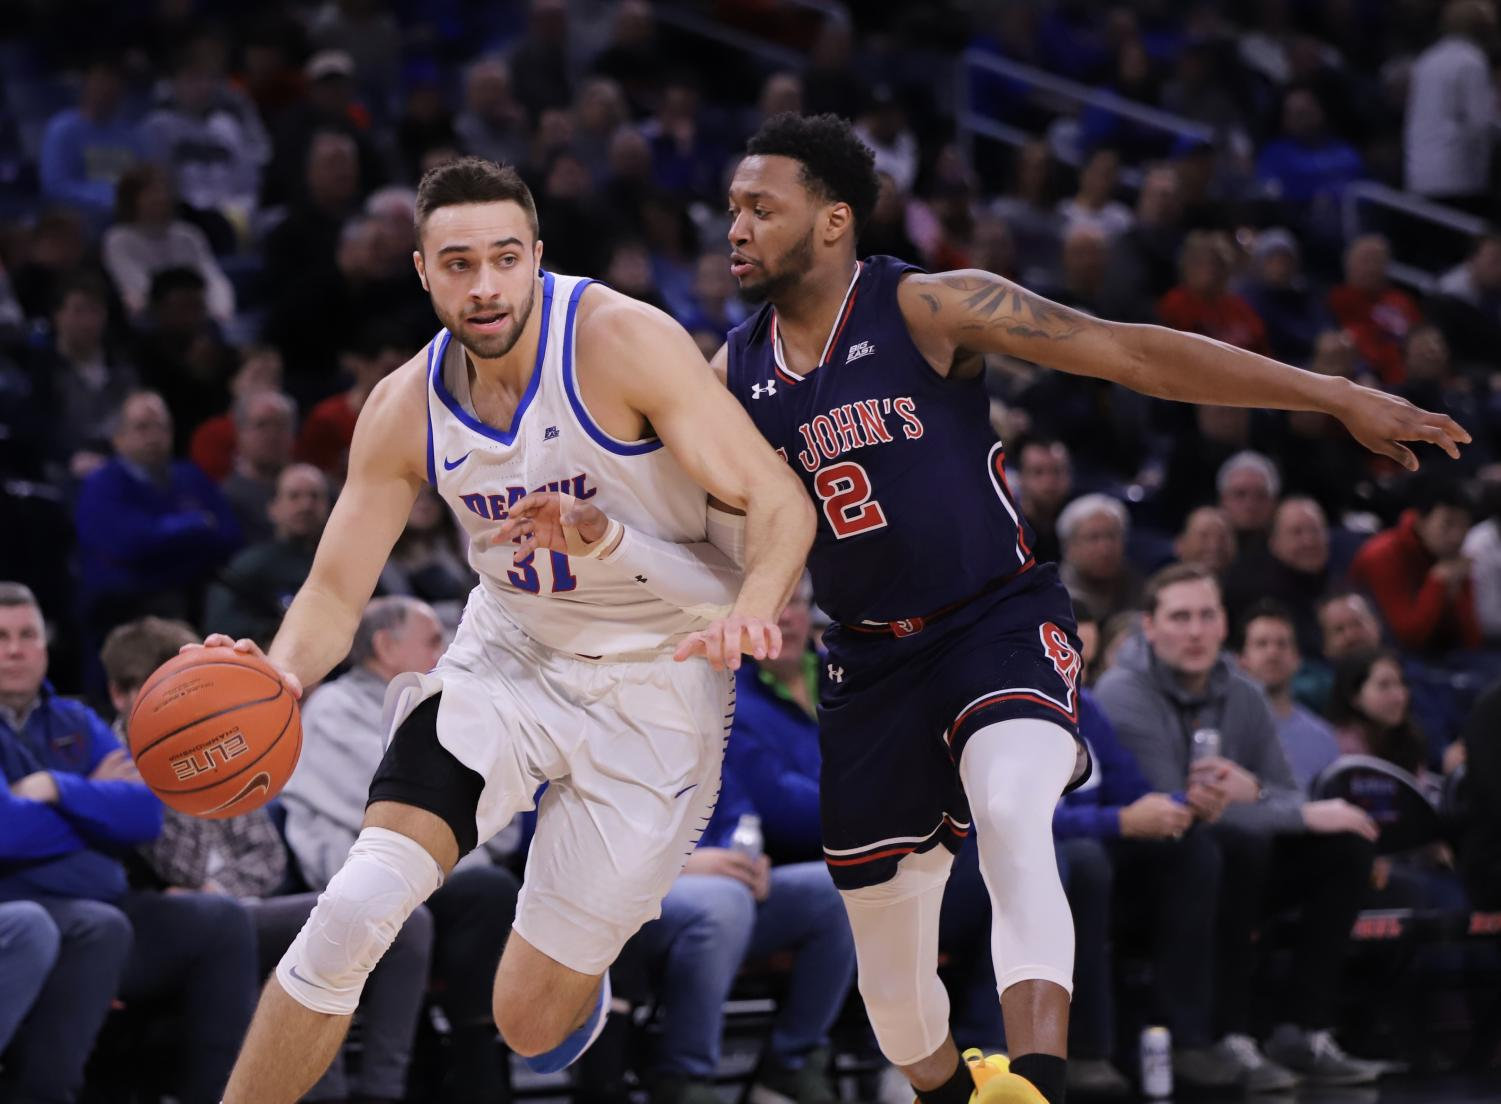 4001d636c49c3e DePaul senior guard Max Strus drives around St. John's defender Shamorie  Ponds on March 3 at Wintrust Arena. Strus finished with a career-high 43  points on ...